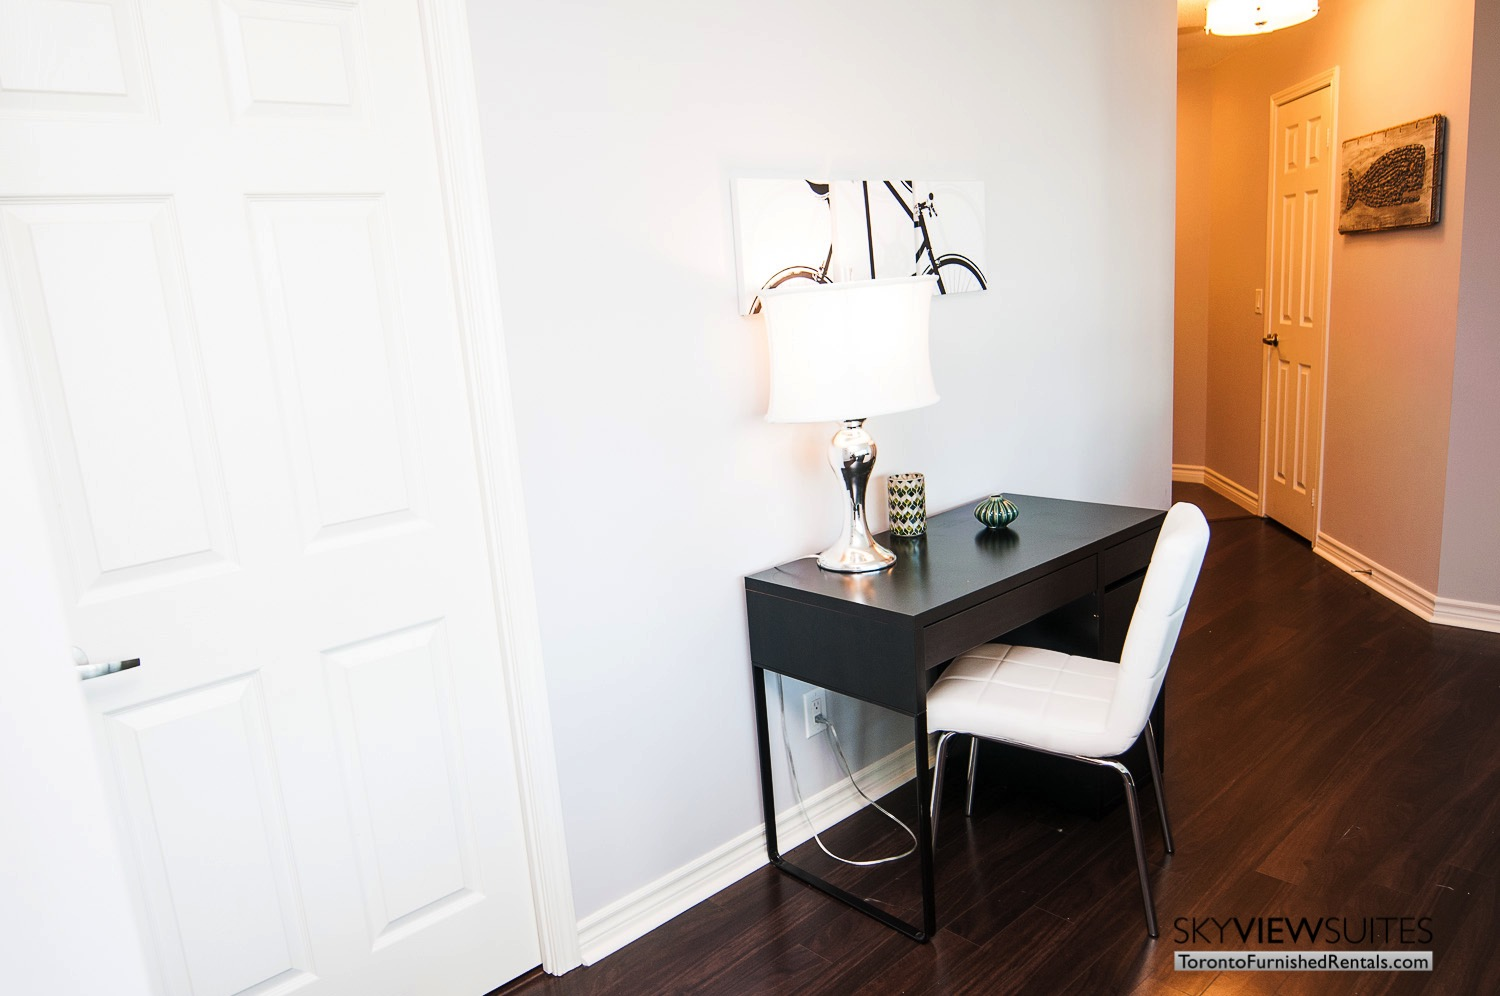 Grand Trunk condos Toronto fully furnished desk